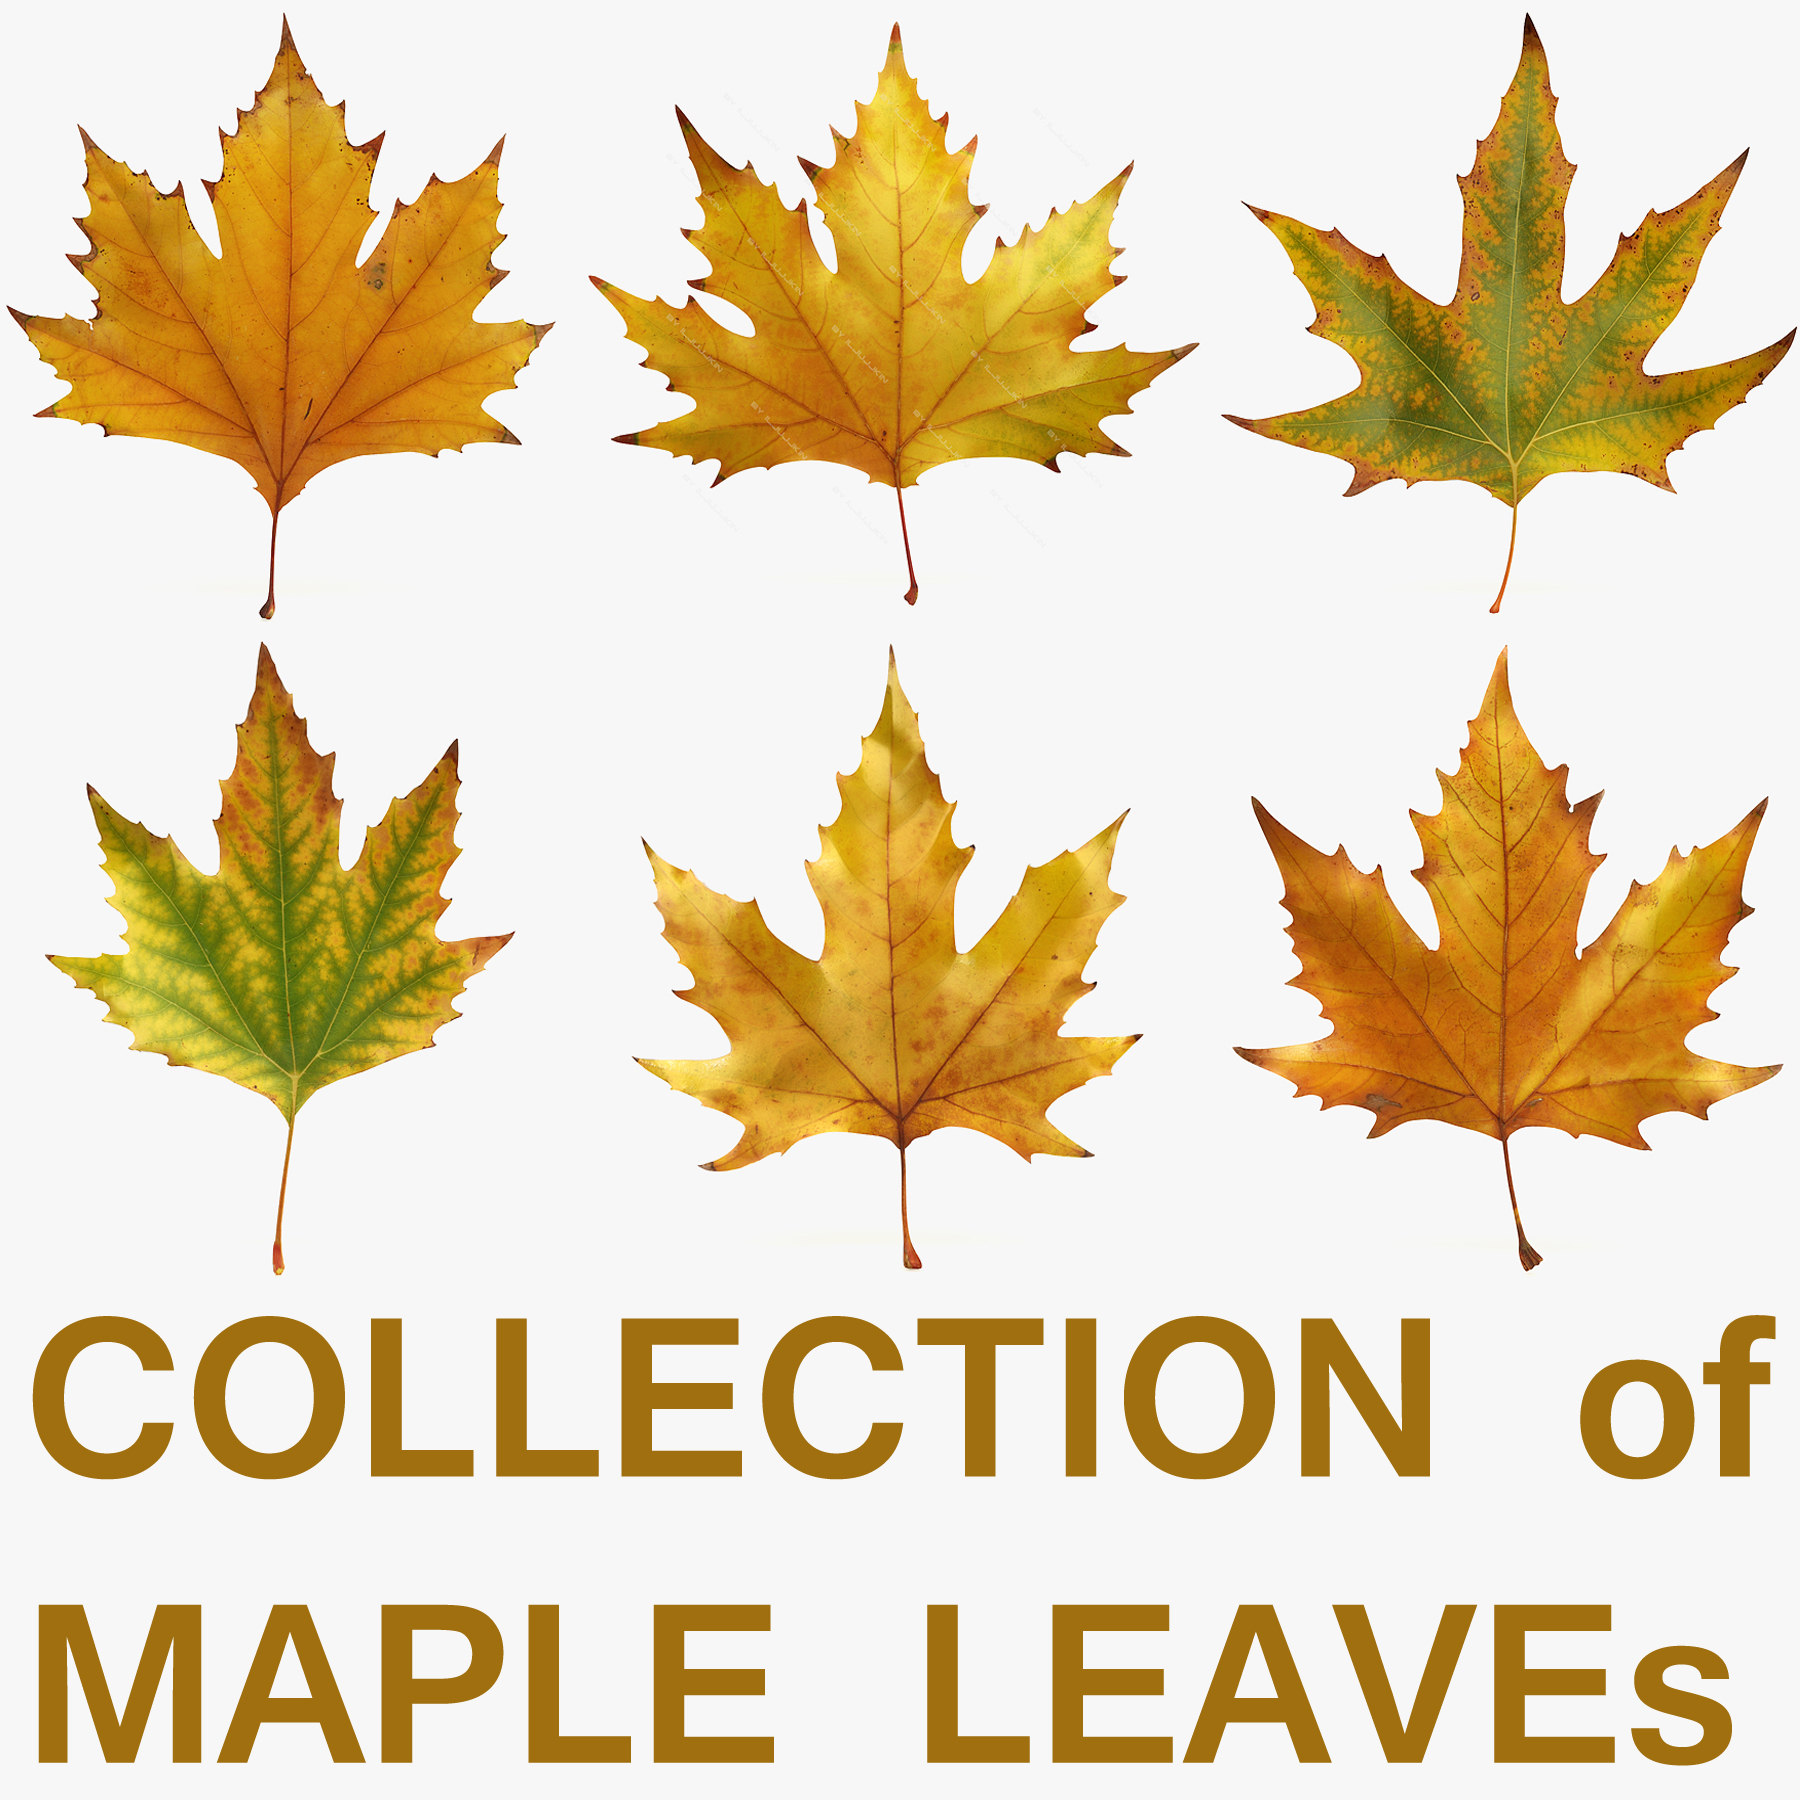 Collection_leaf_maple.jpg